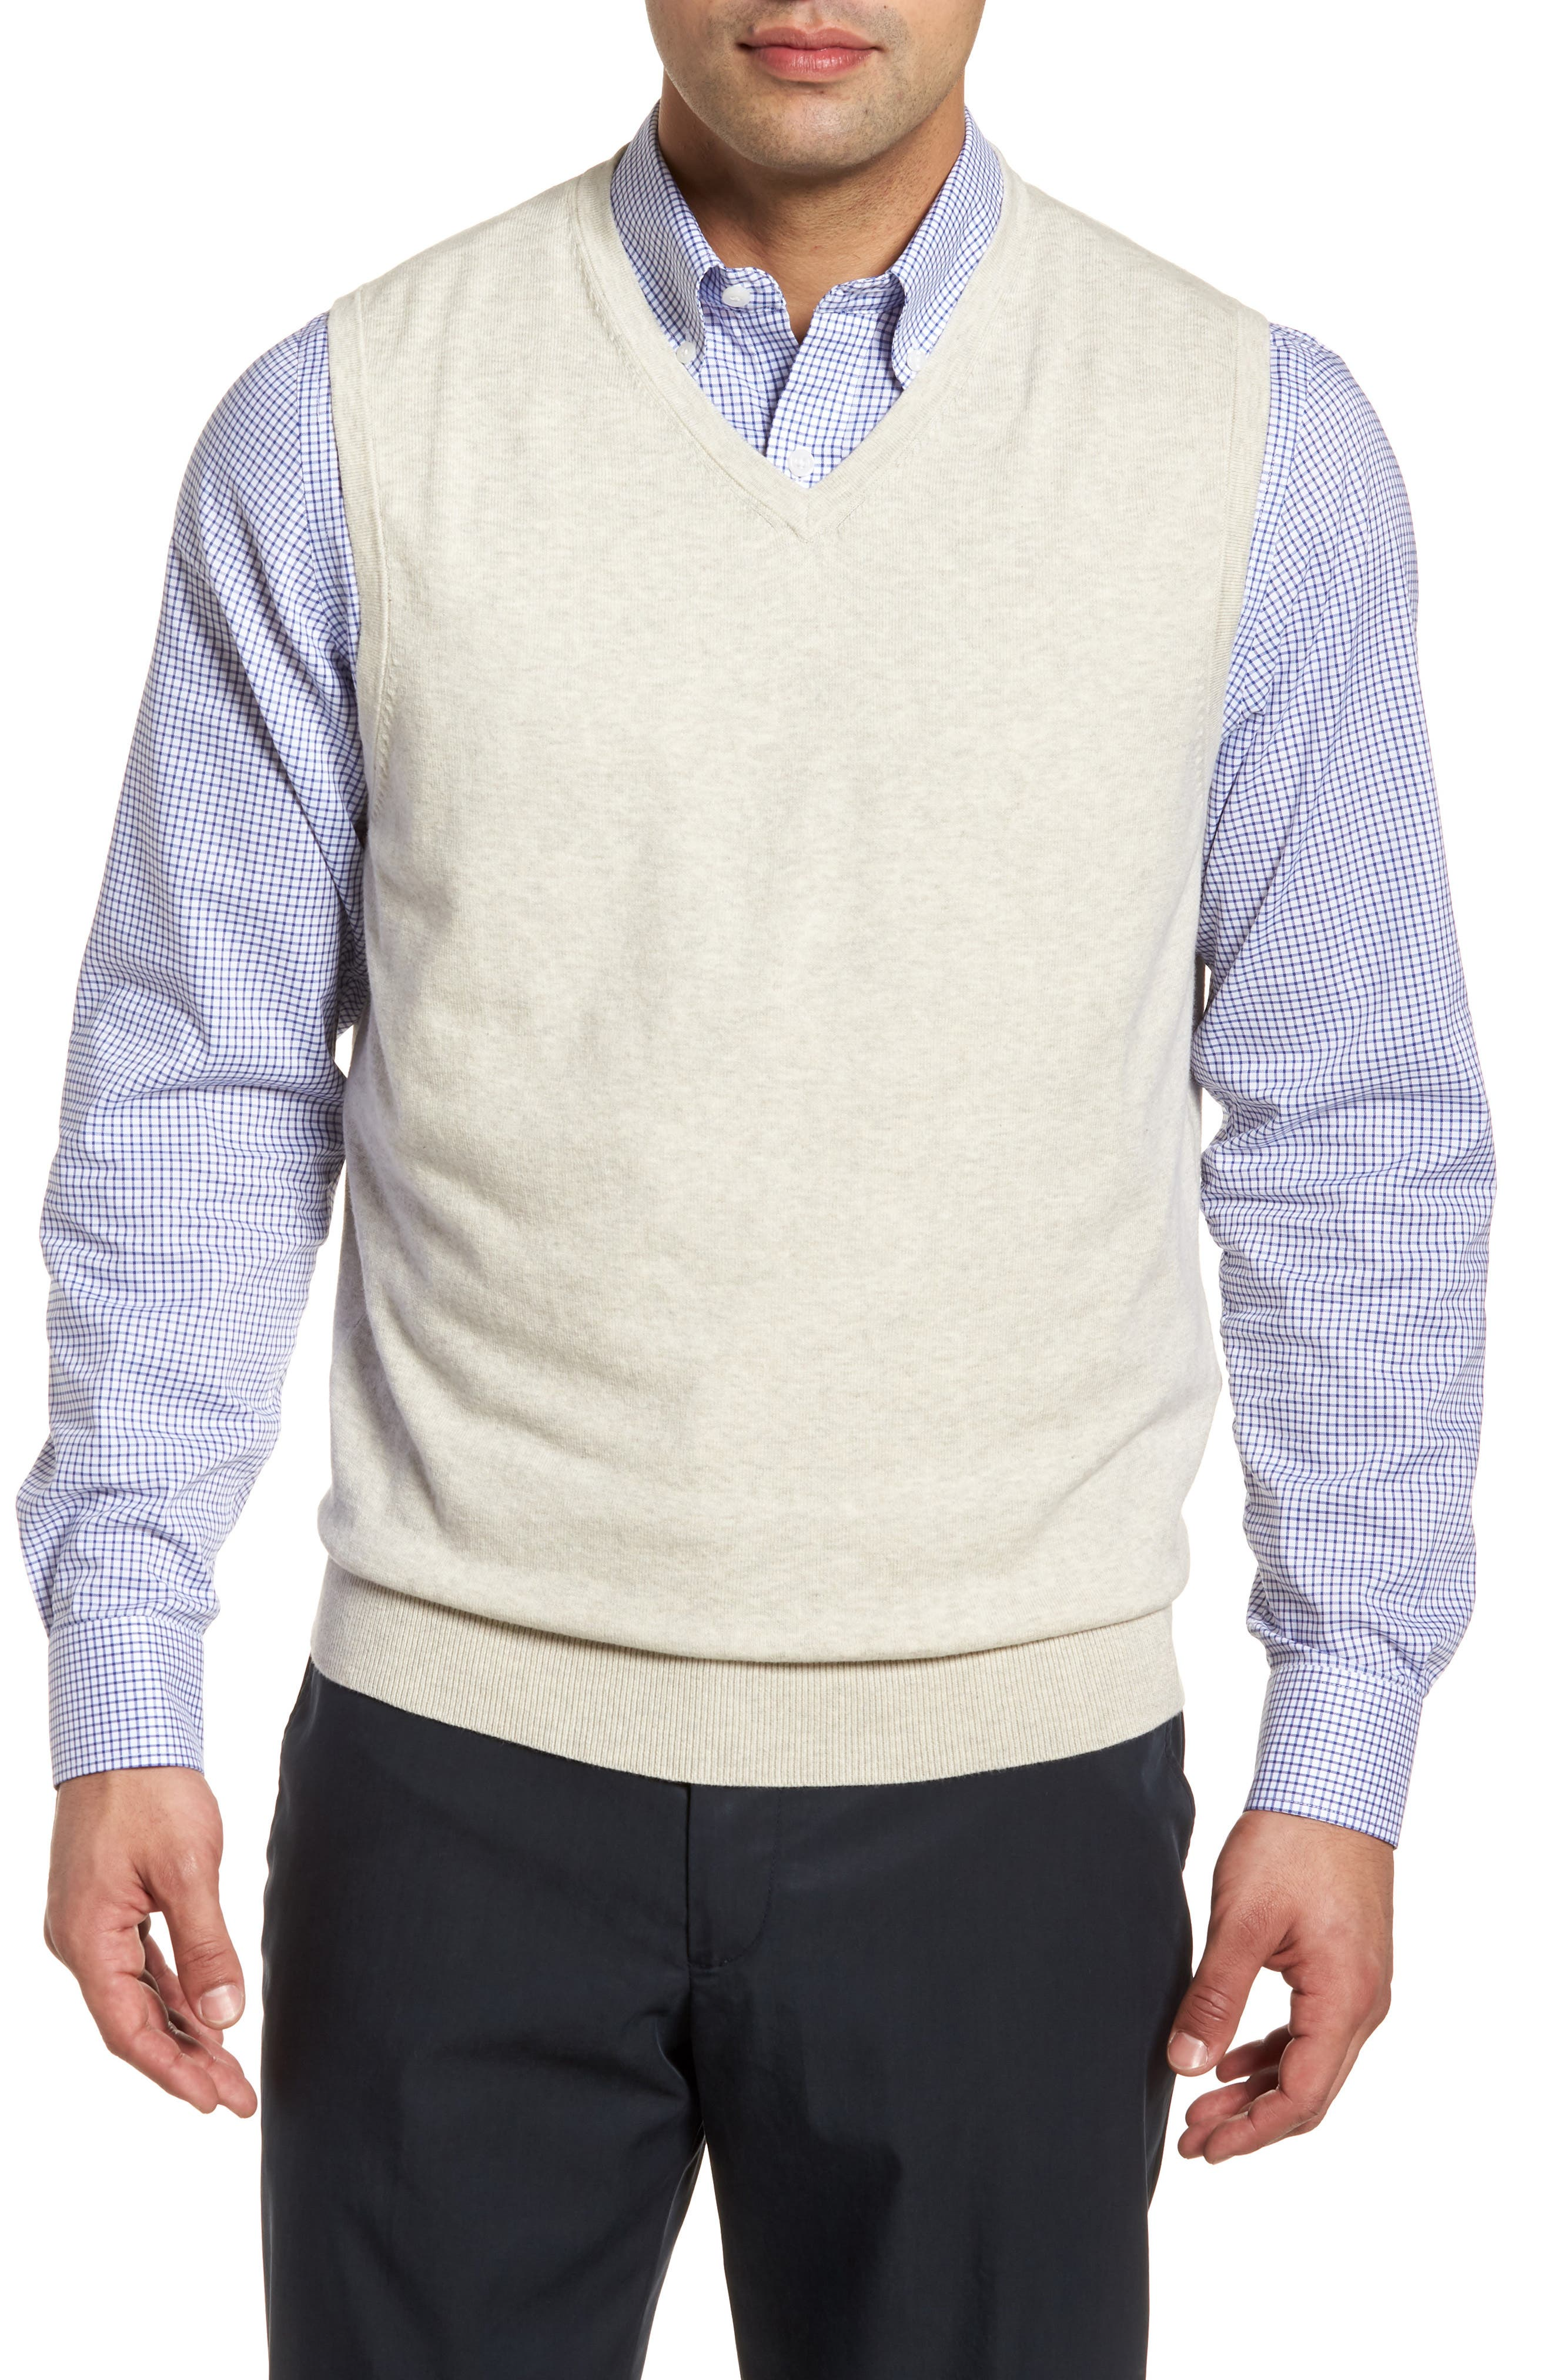 Cutter & Buck Lakemont Classic Fit Sweater Vest, Grey